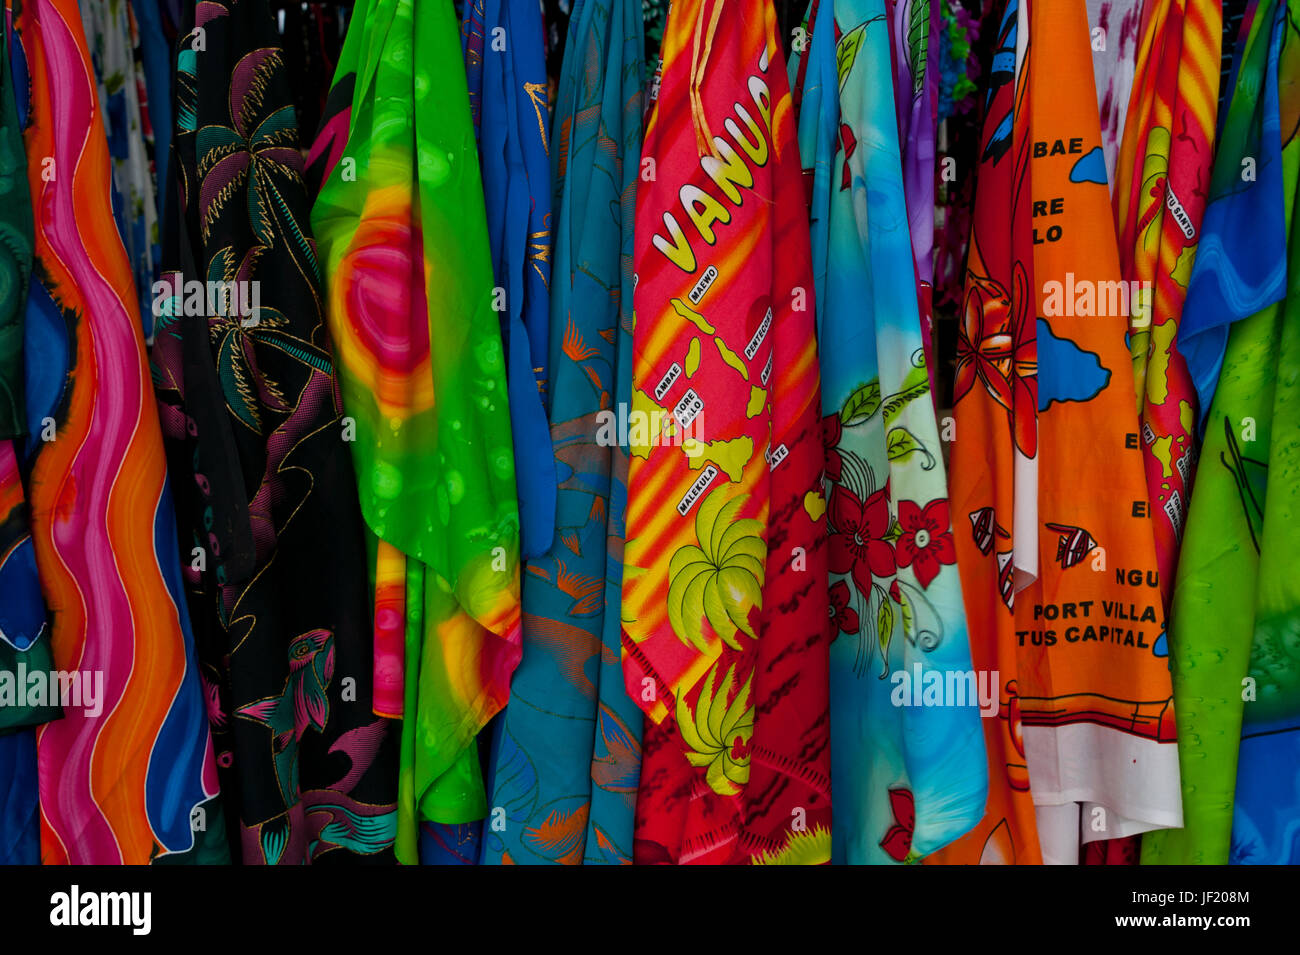 Sarongs for sale in Port Vila, Island of Efate, Vanuatu, South Pacific - Stock Image